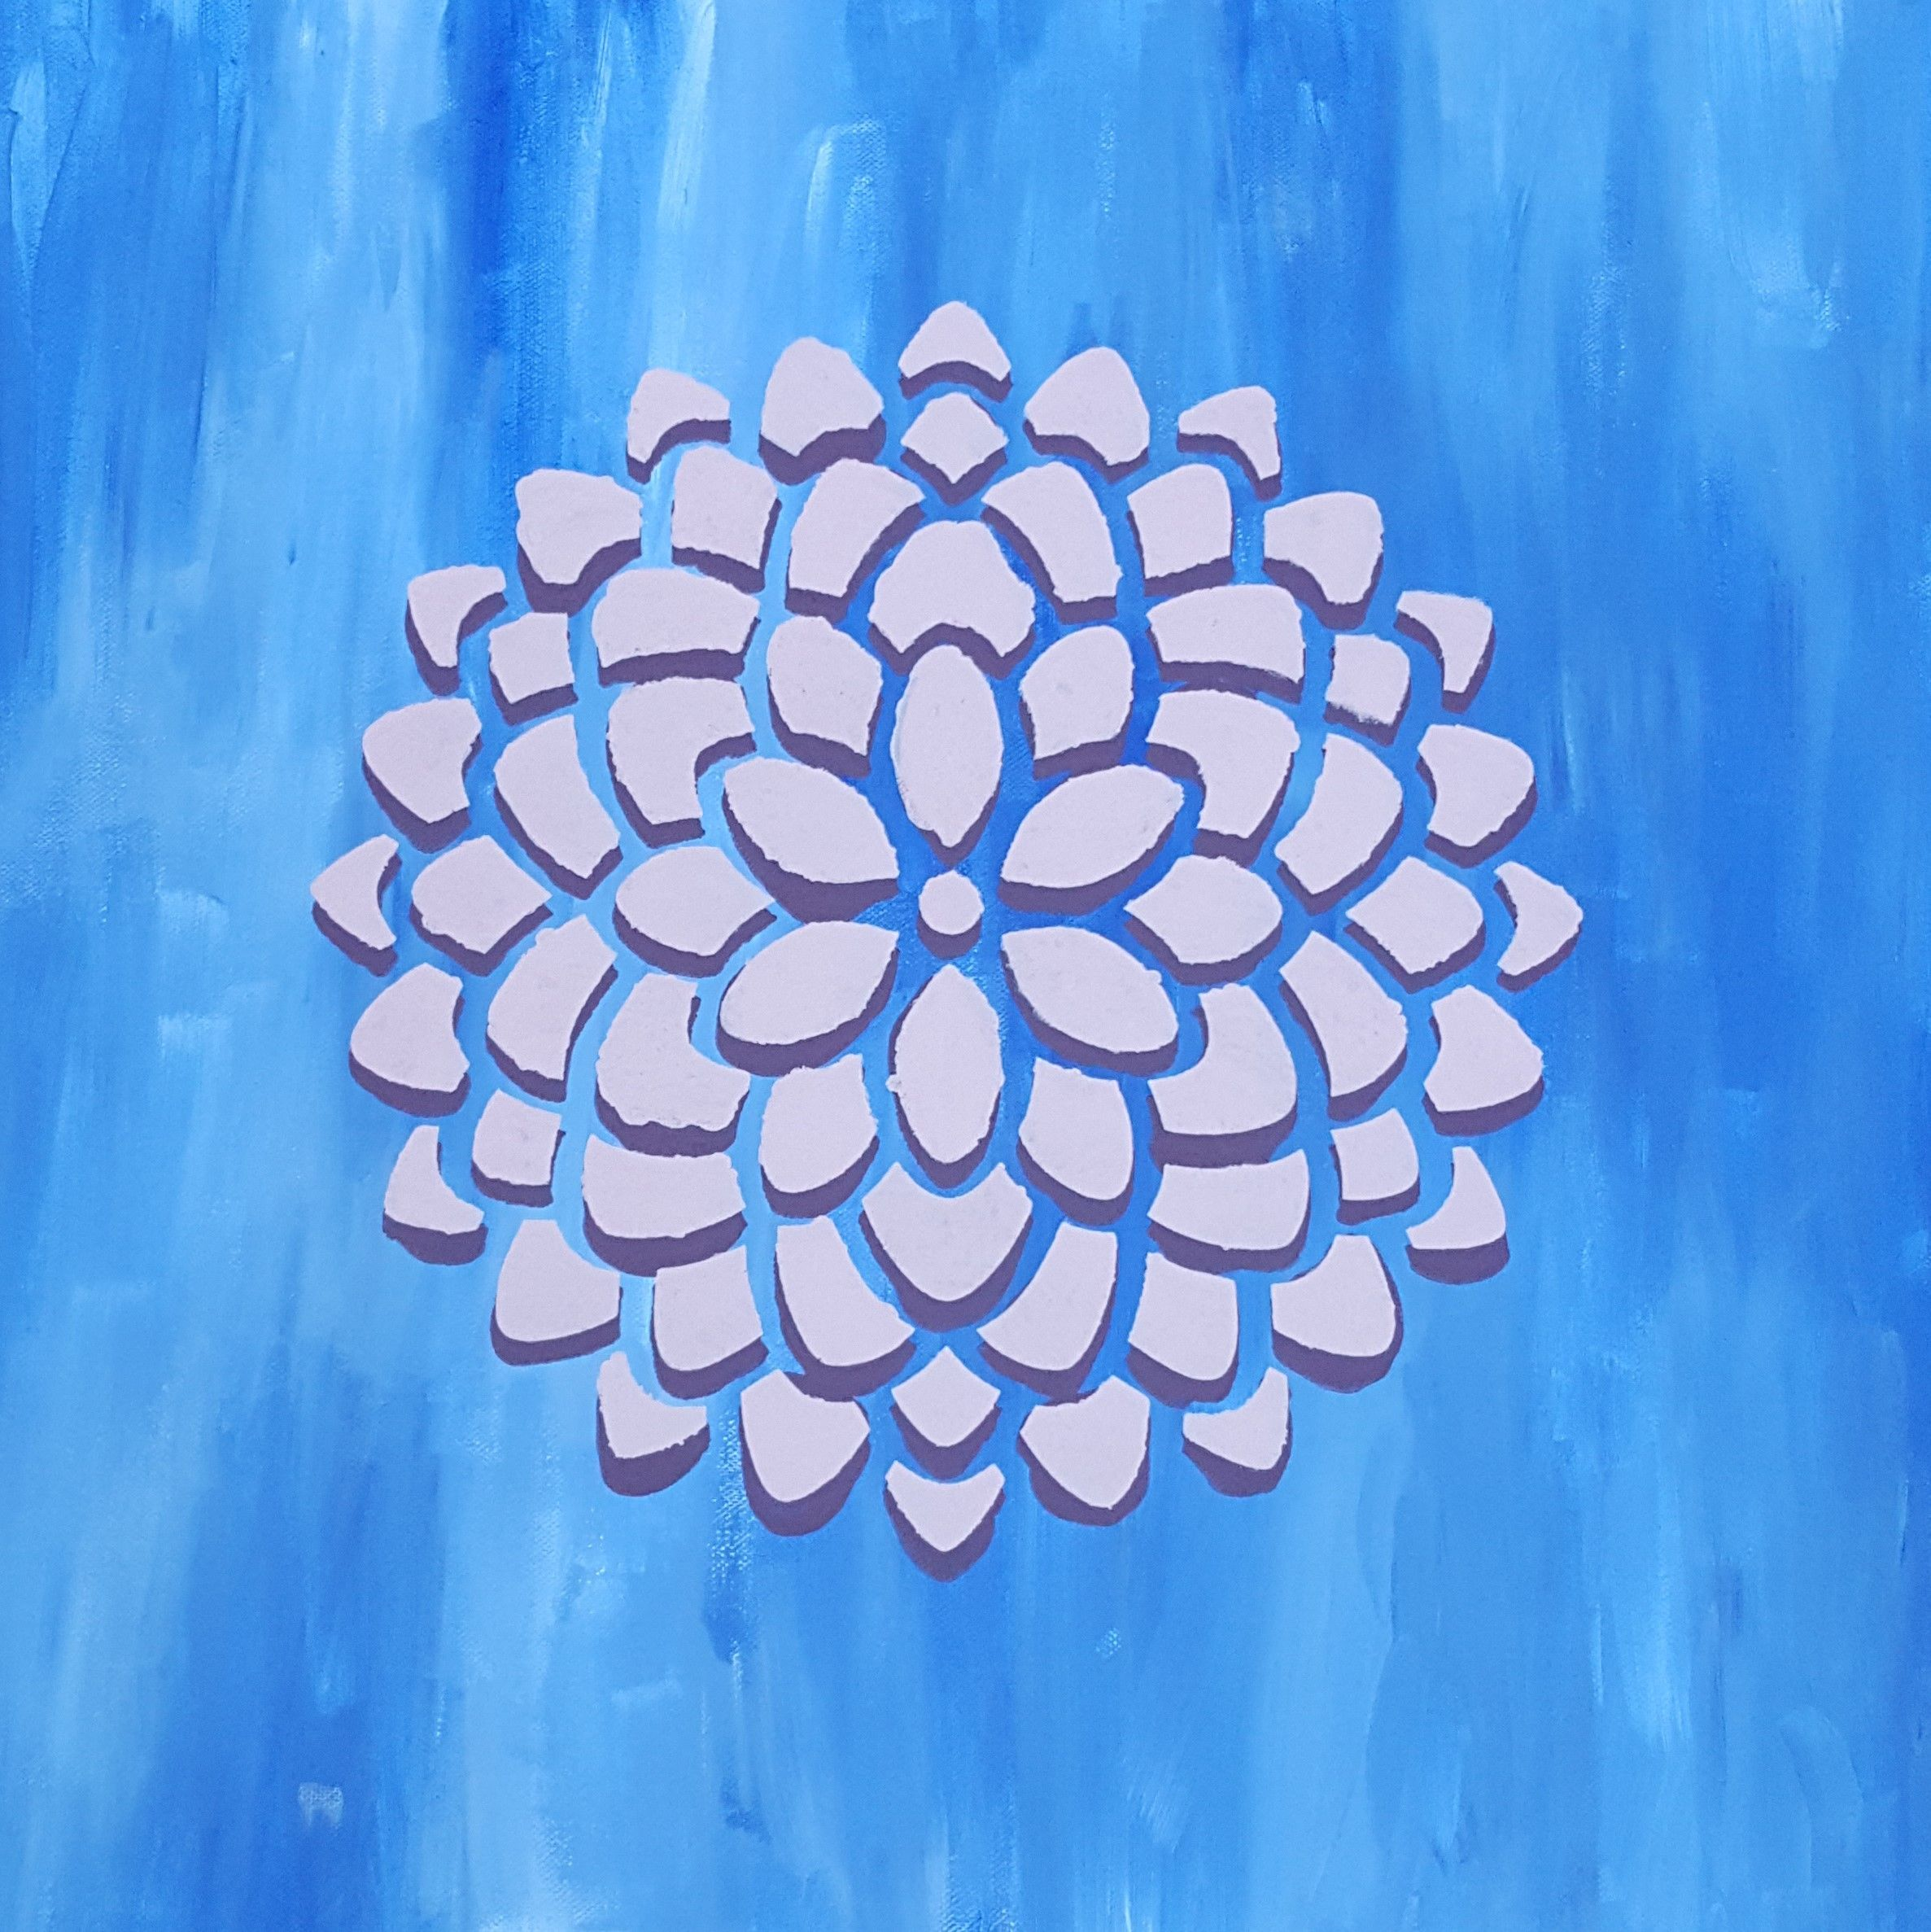 Ascendant The Luminous Palette Abstract Painting Blue White